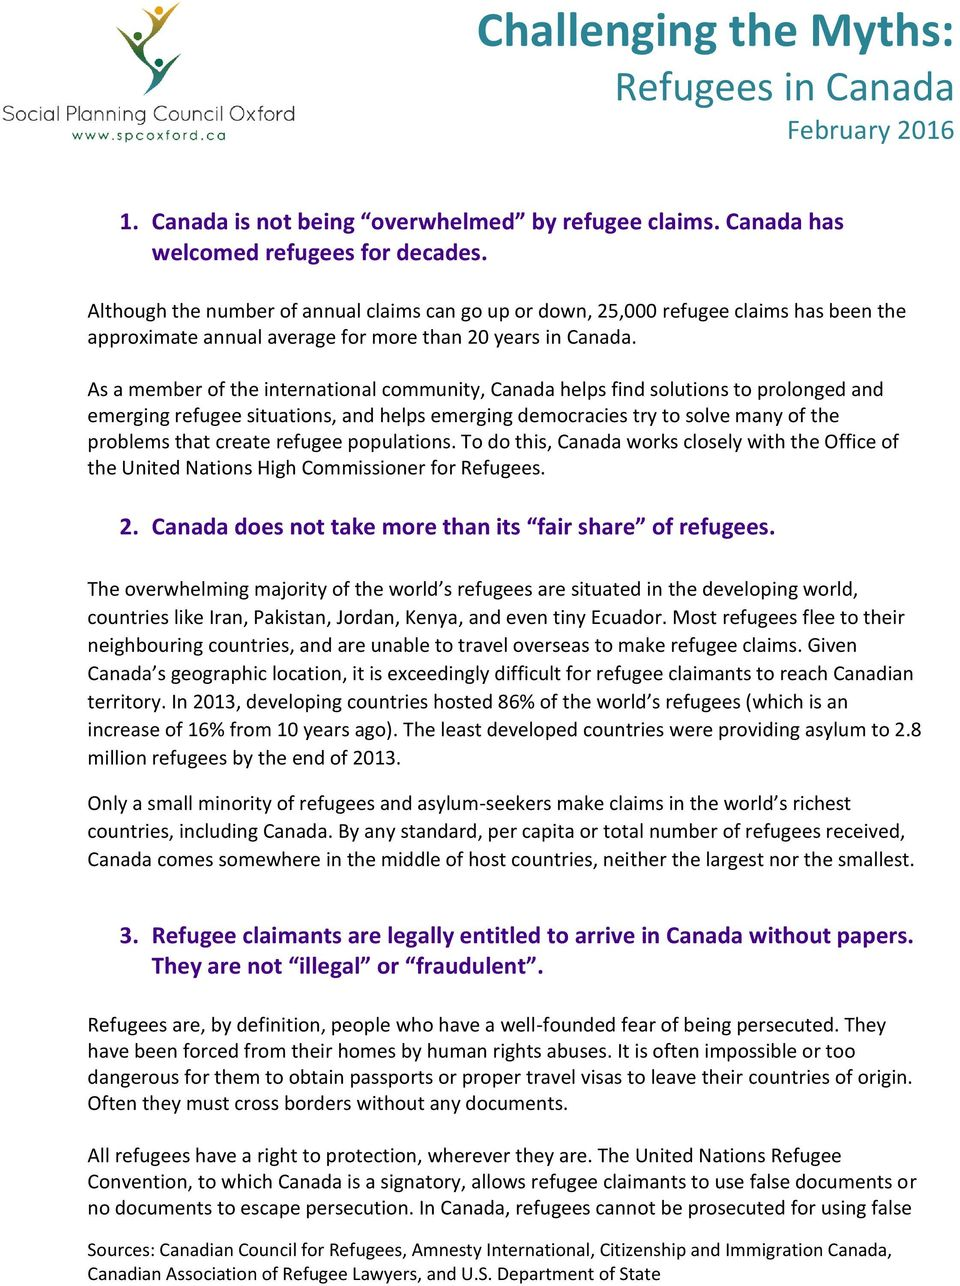 As a member of the international community, Canada helps find solutions to prolonged and emerging refugee situations, and helps emerging democracies try to solve many of the problems that create